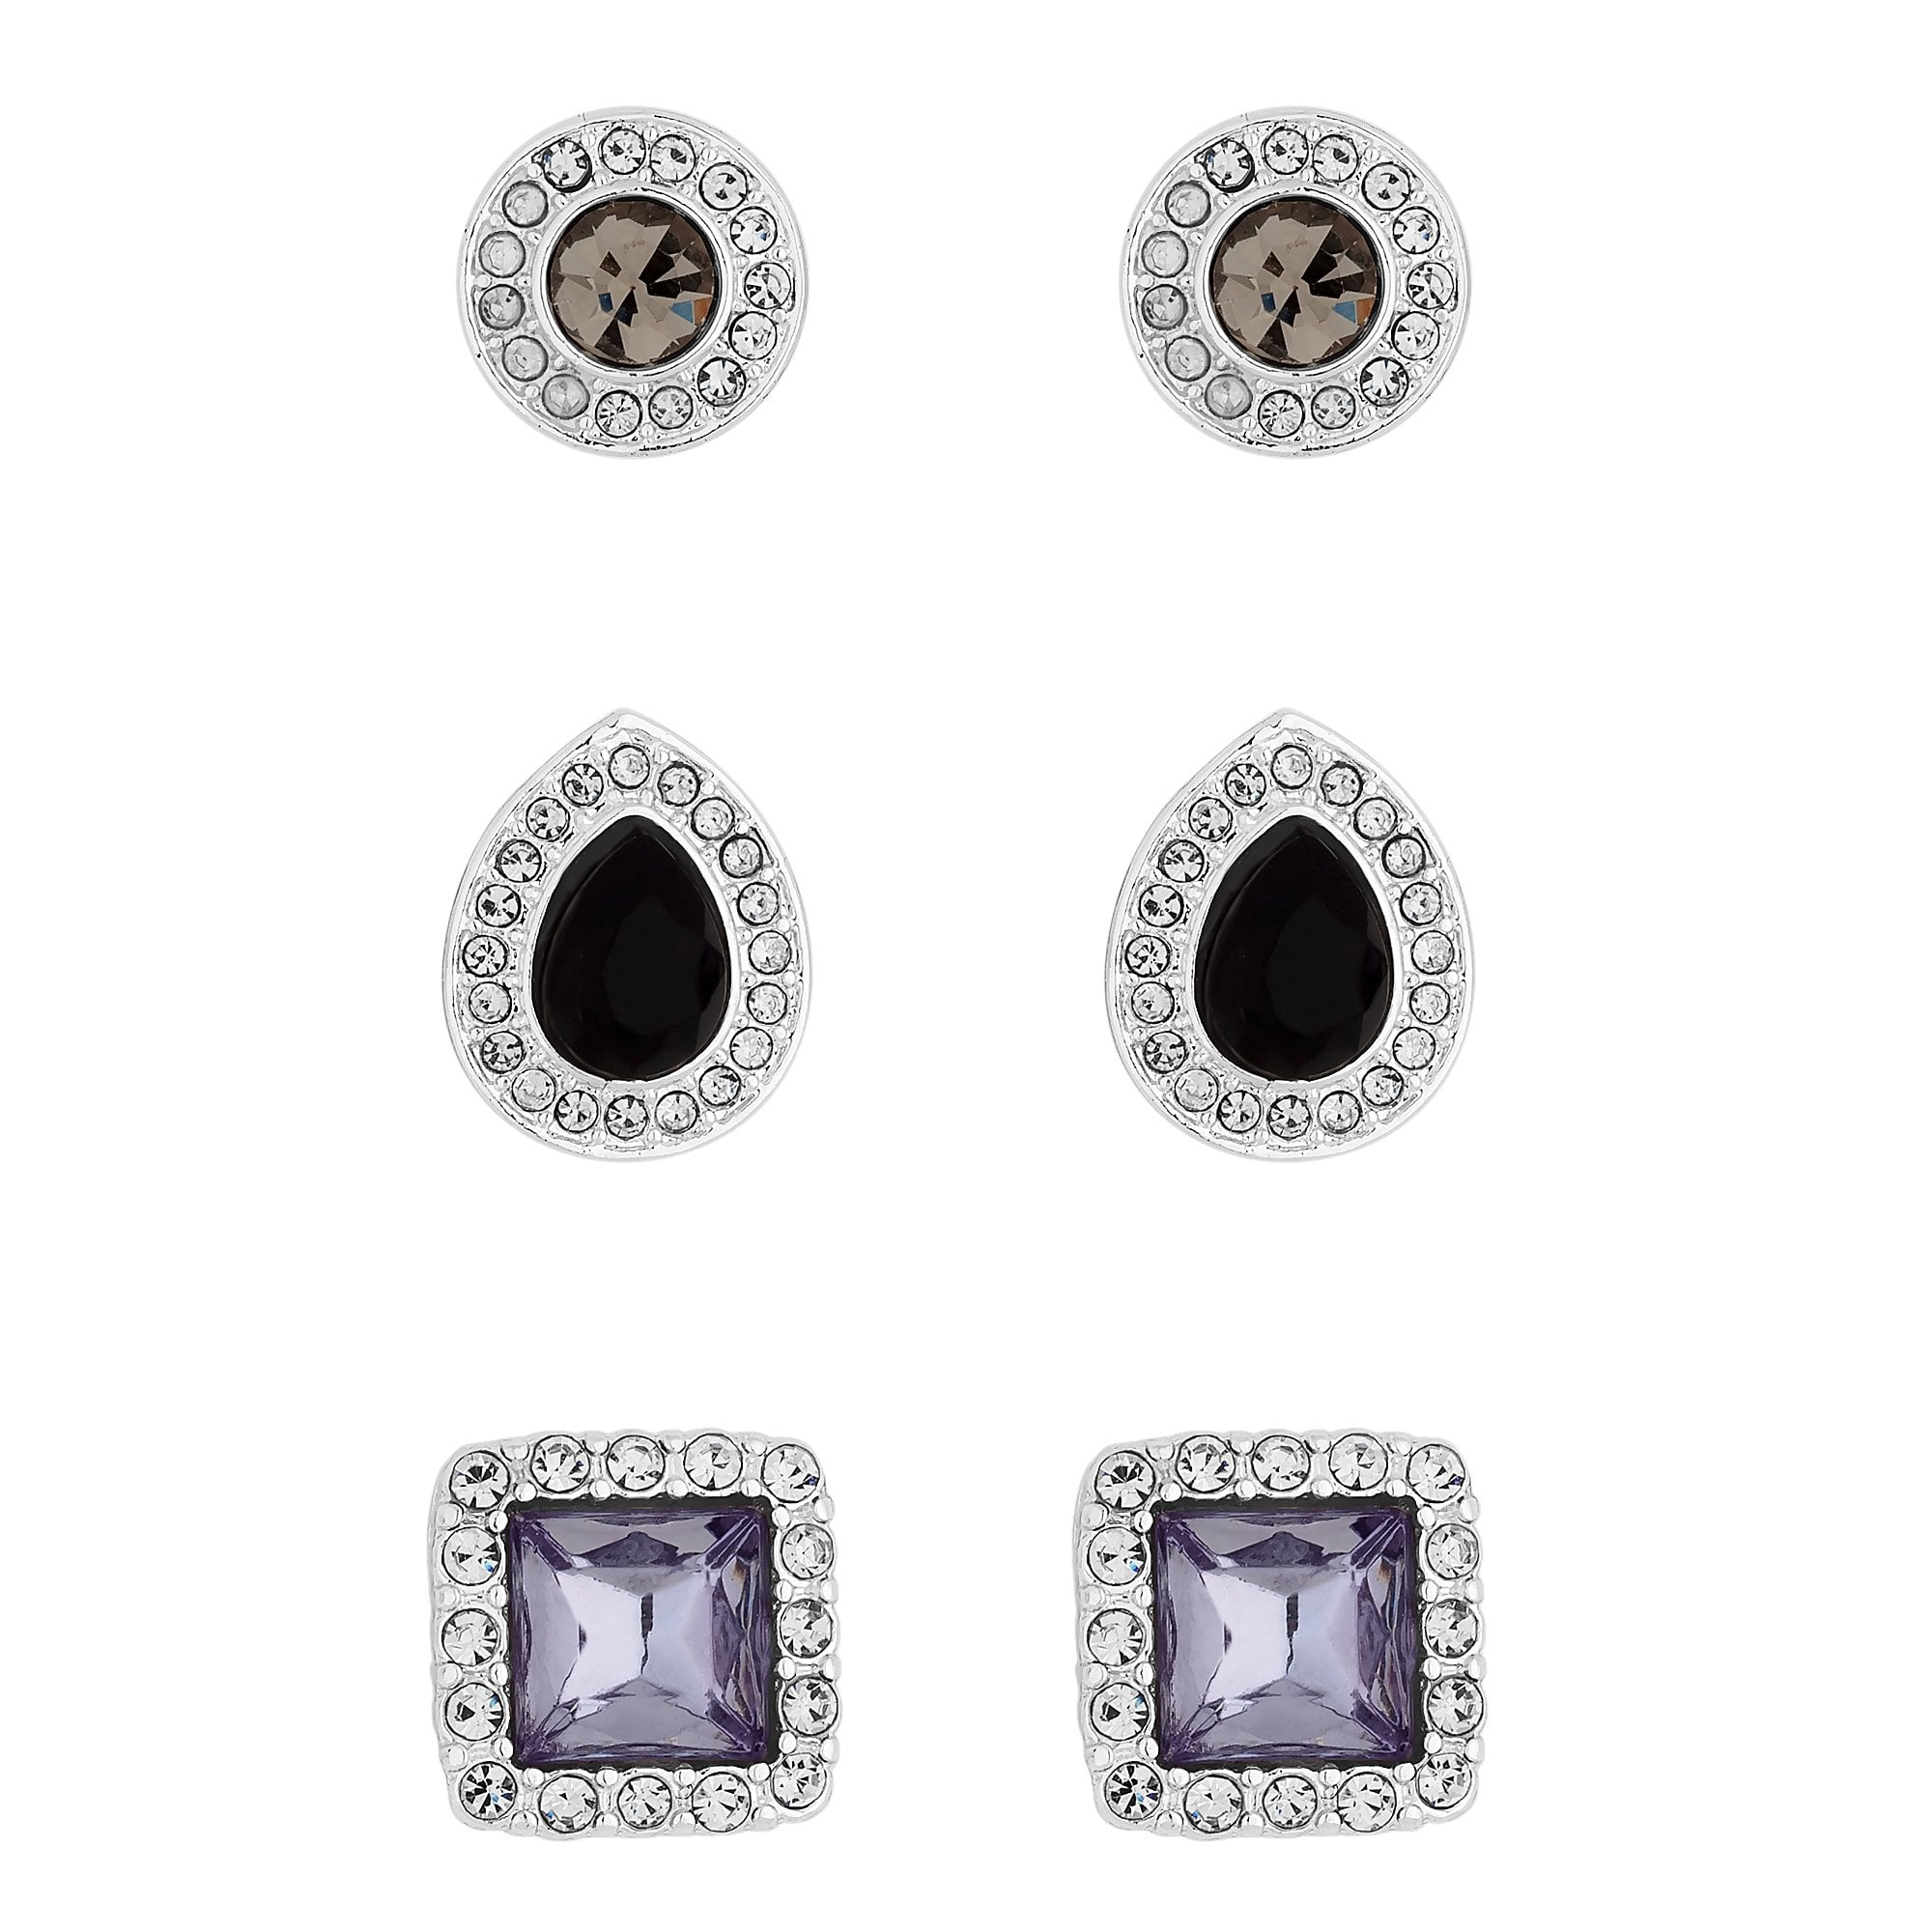 b62a5e2dae569 Silver Plated Crystal Mix Shape Halo Stud Earrings Pack Of 3